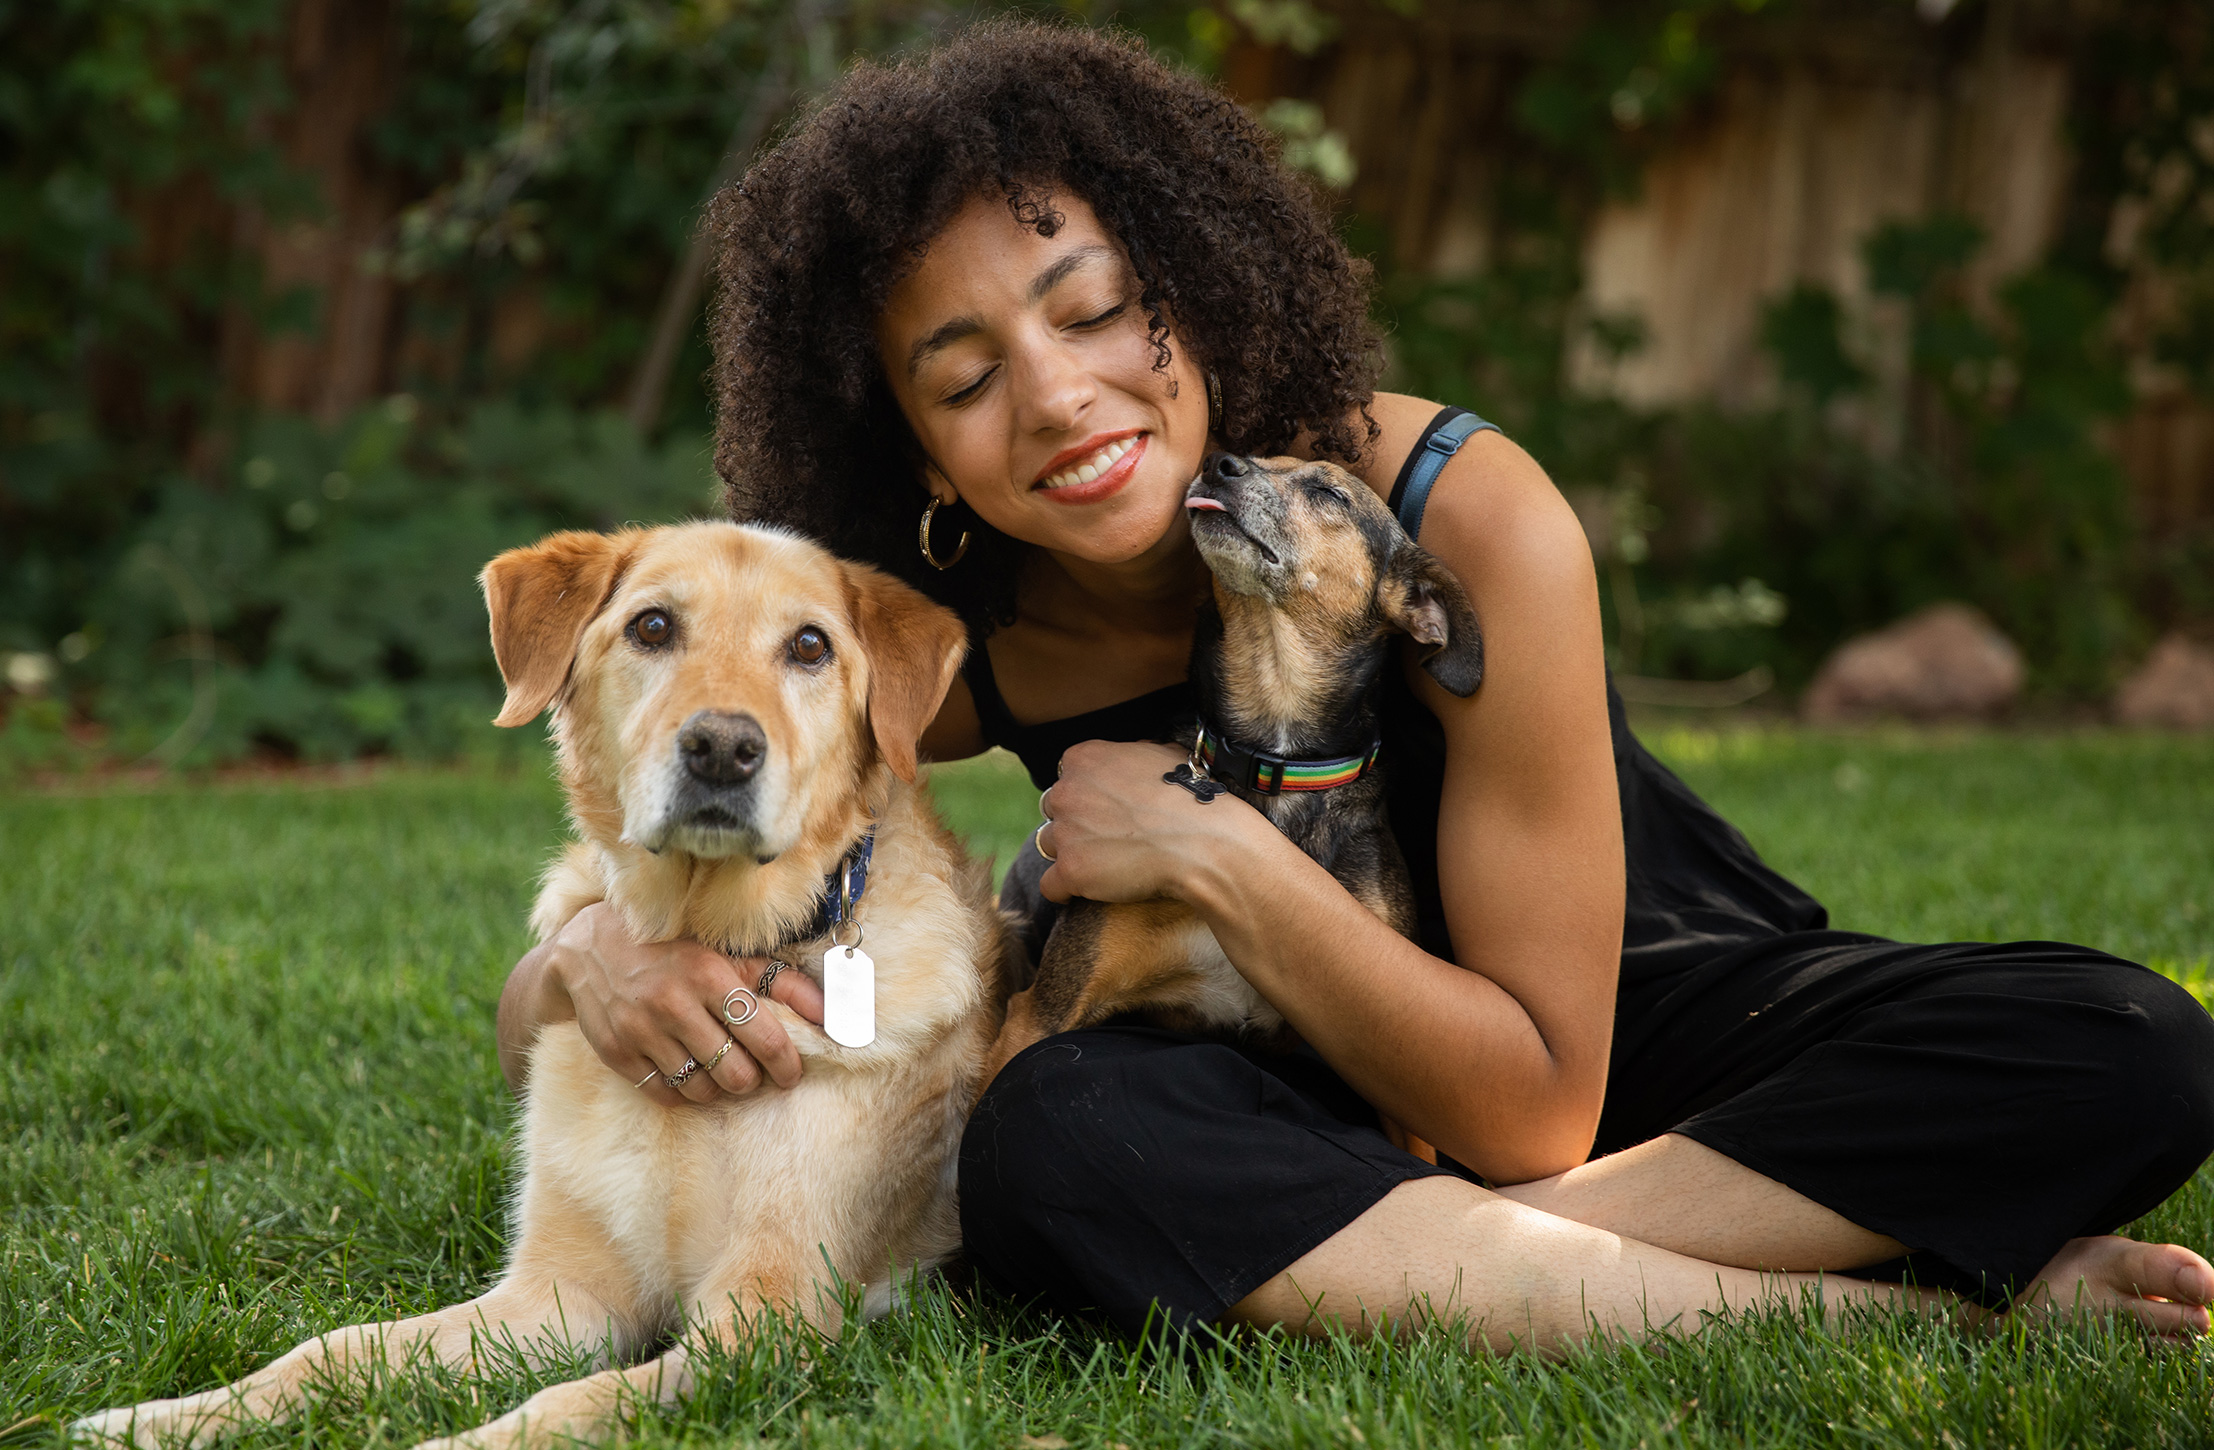 Smiling woman hugging a yellow Lab and getting kissed on the chin by a small dog who she's holding